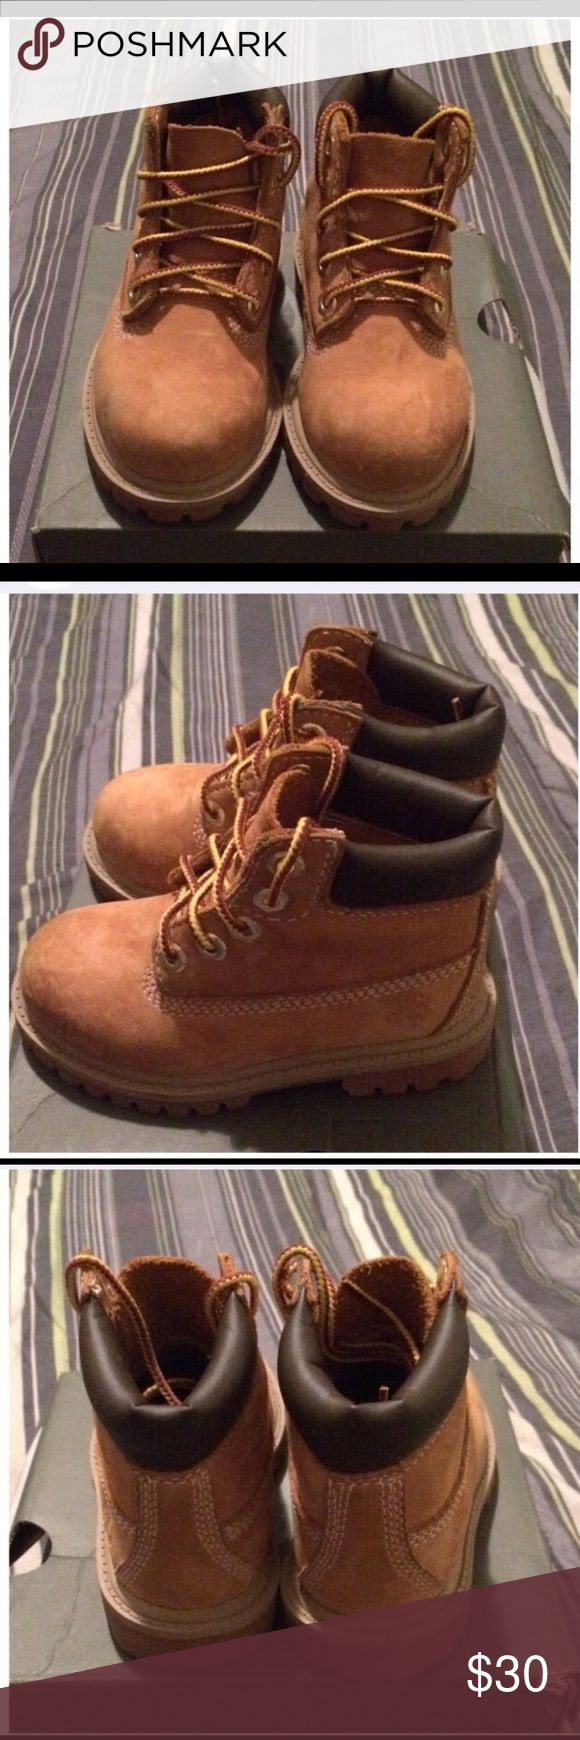 Toddler Wheat Timberland Boots Size infant 7 Timberland Shoes Sneakers